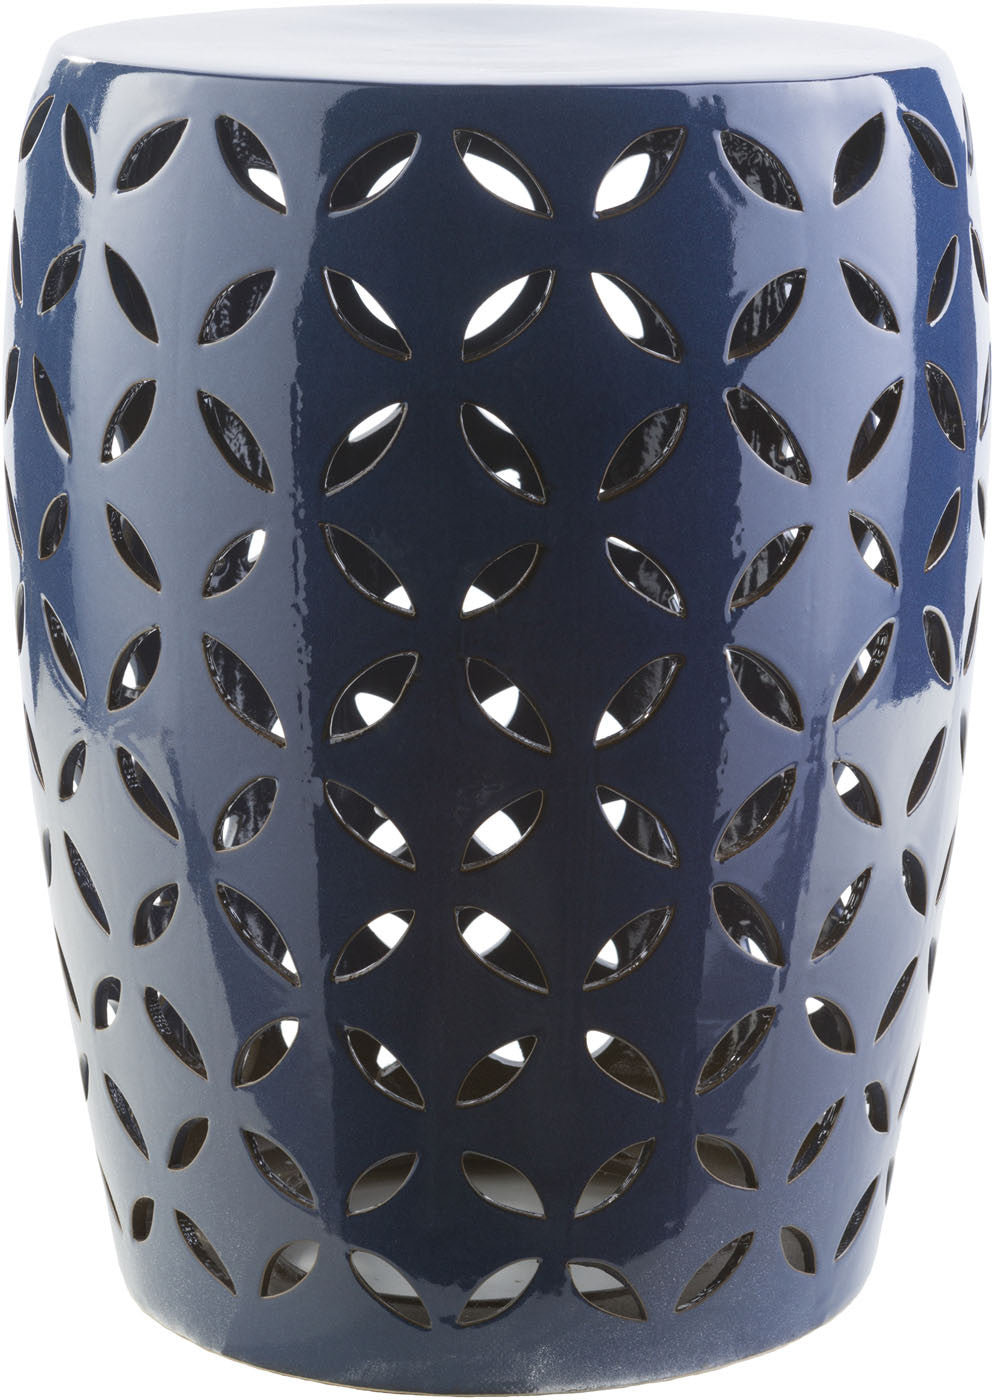 Chantilly Ceramic Stool - Cobalt CHT760-M by Surya